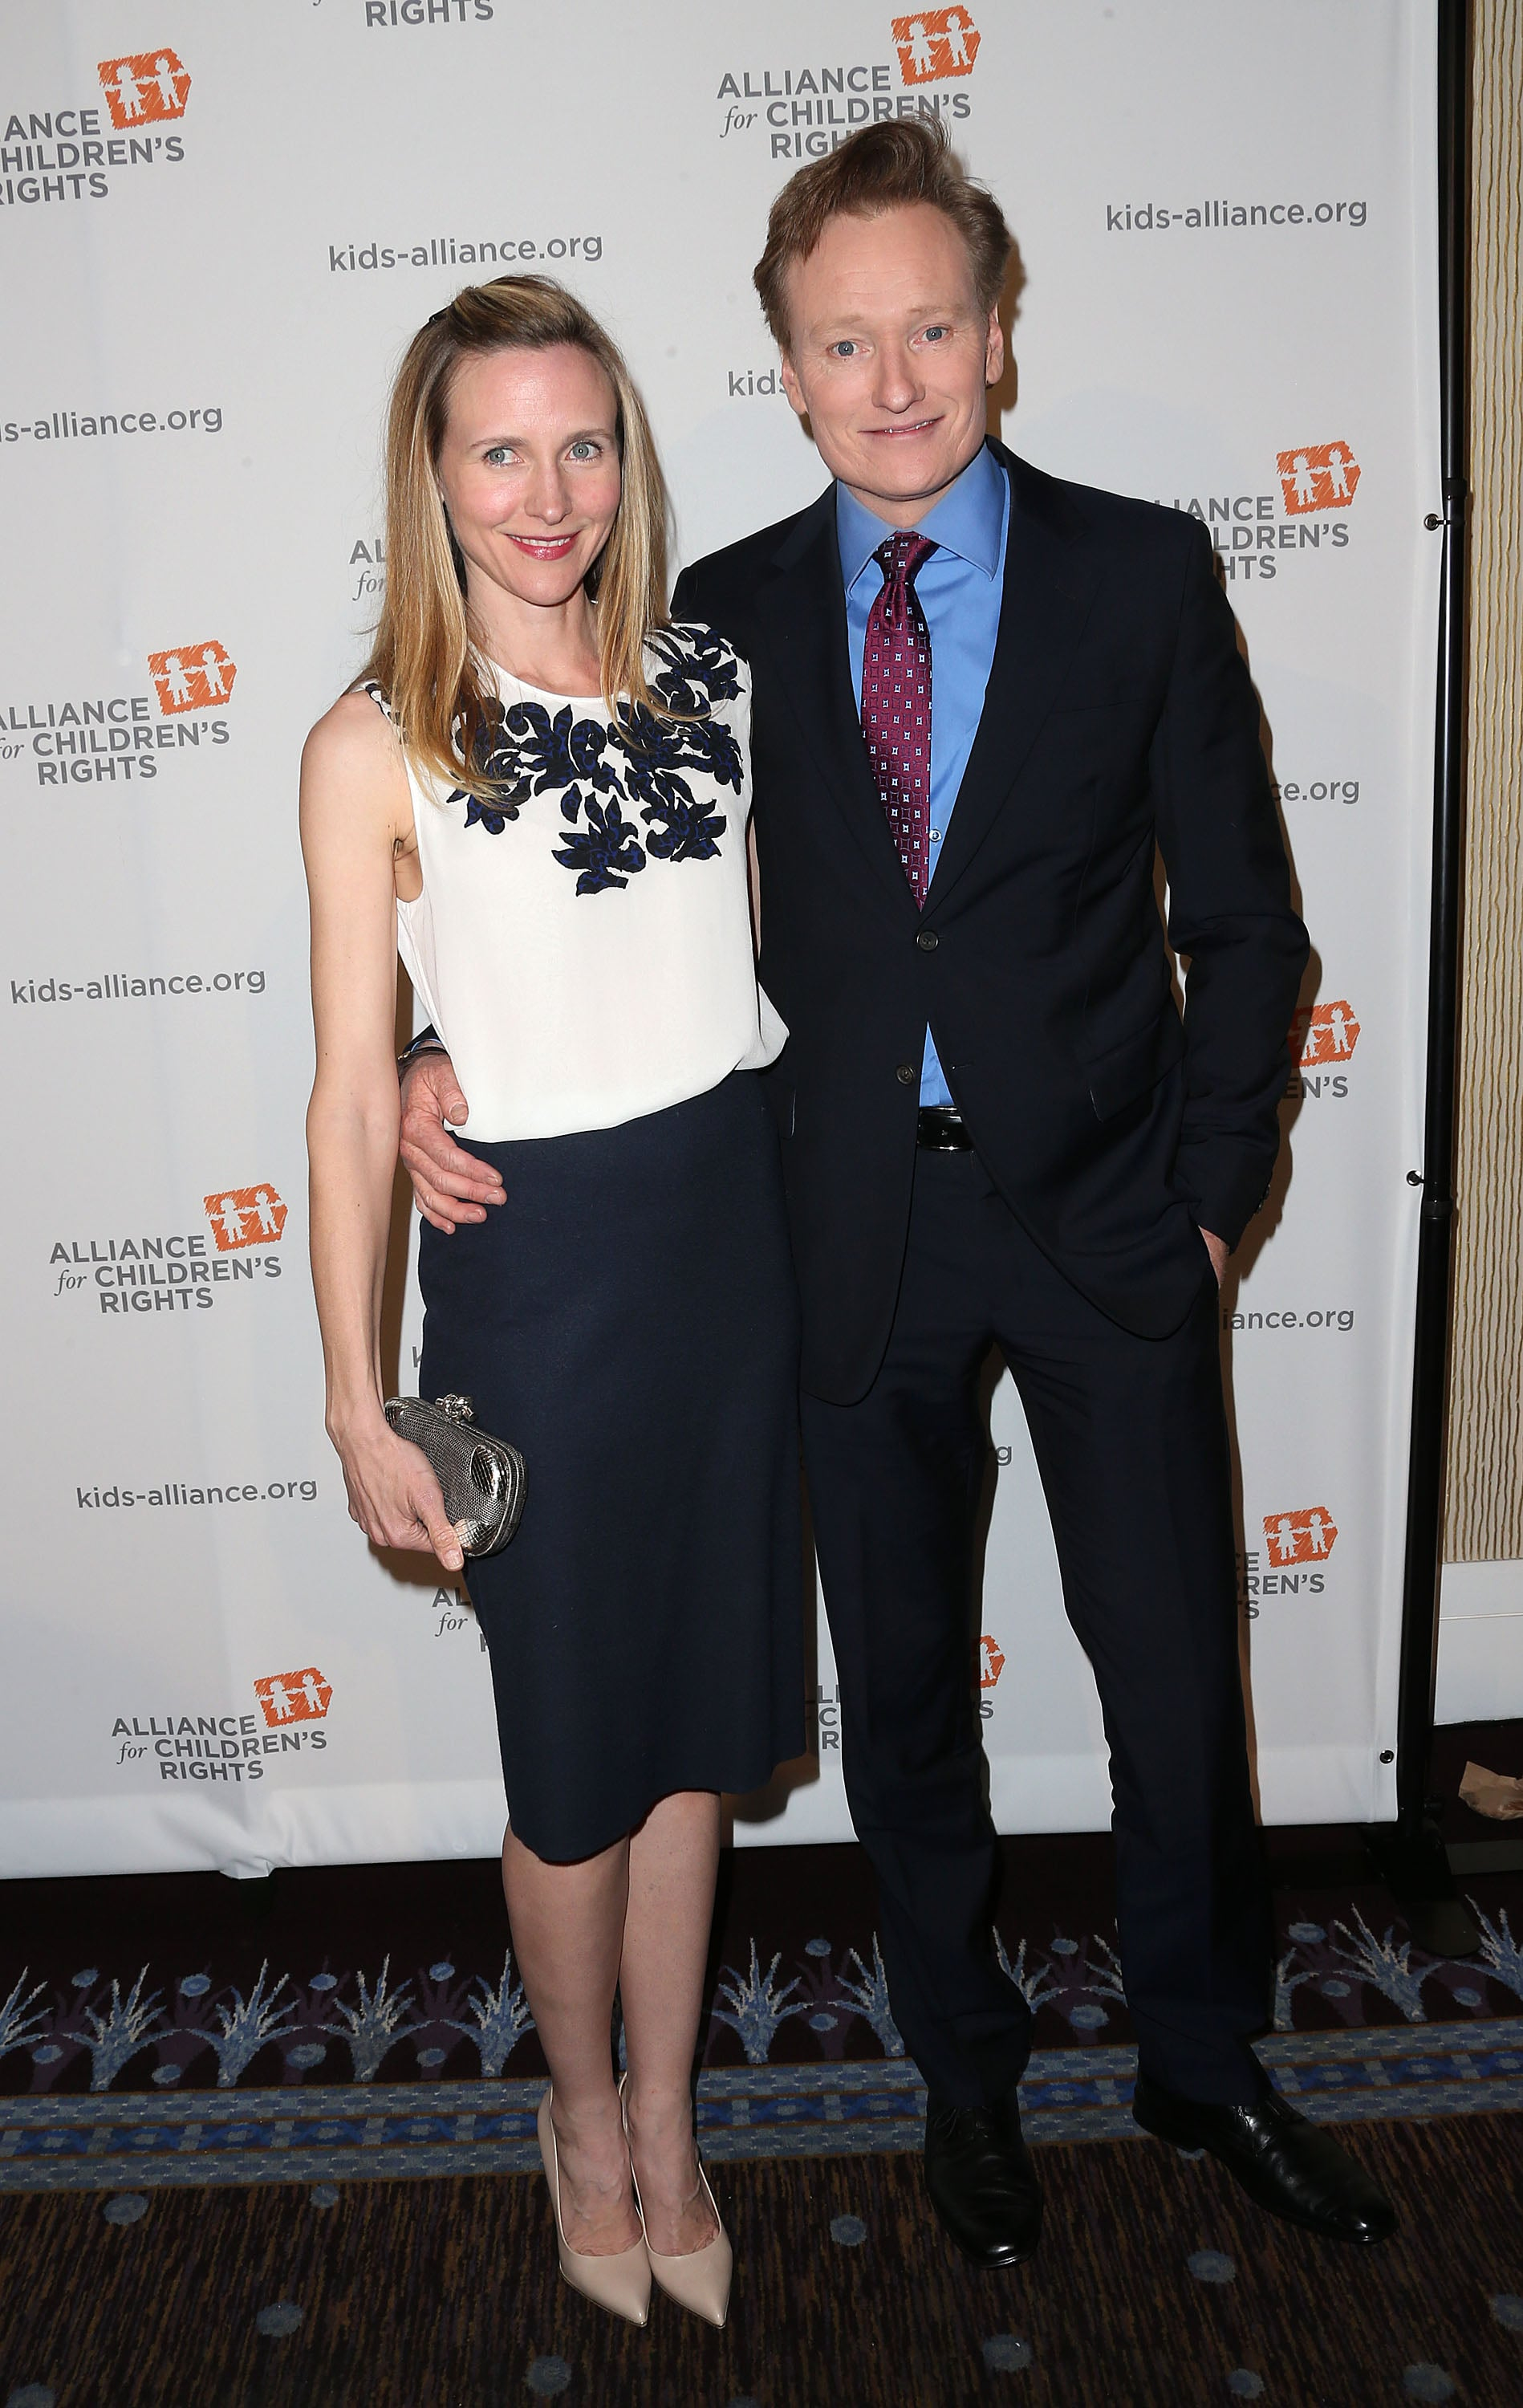 Conan O'Brien attended the dinner with wife Liza Powel.